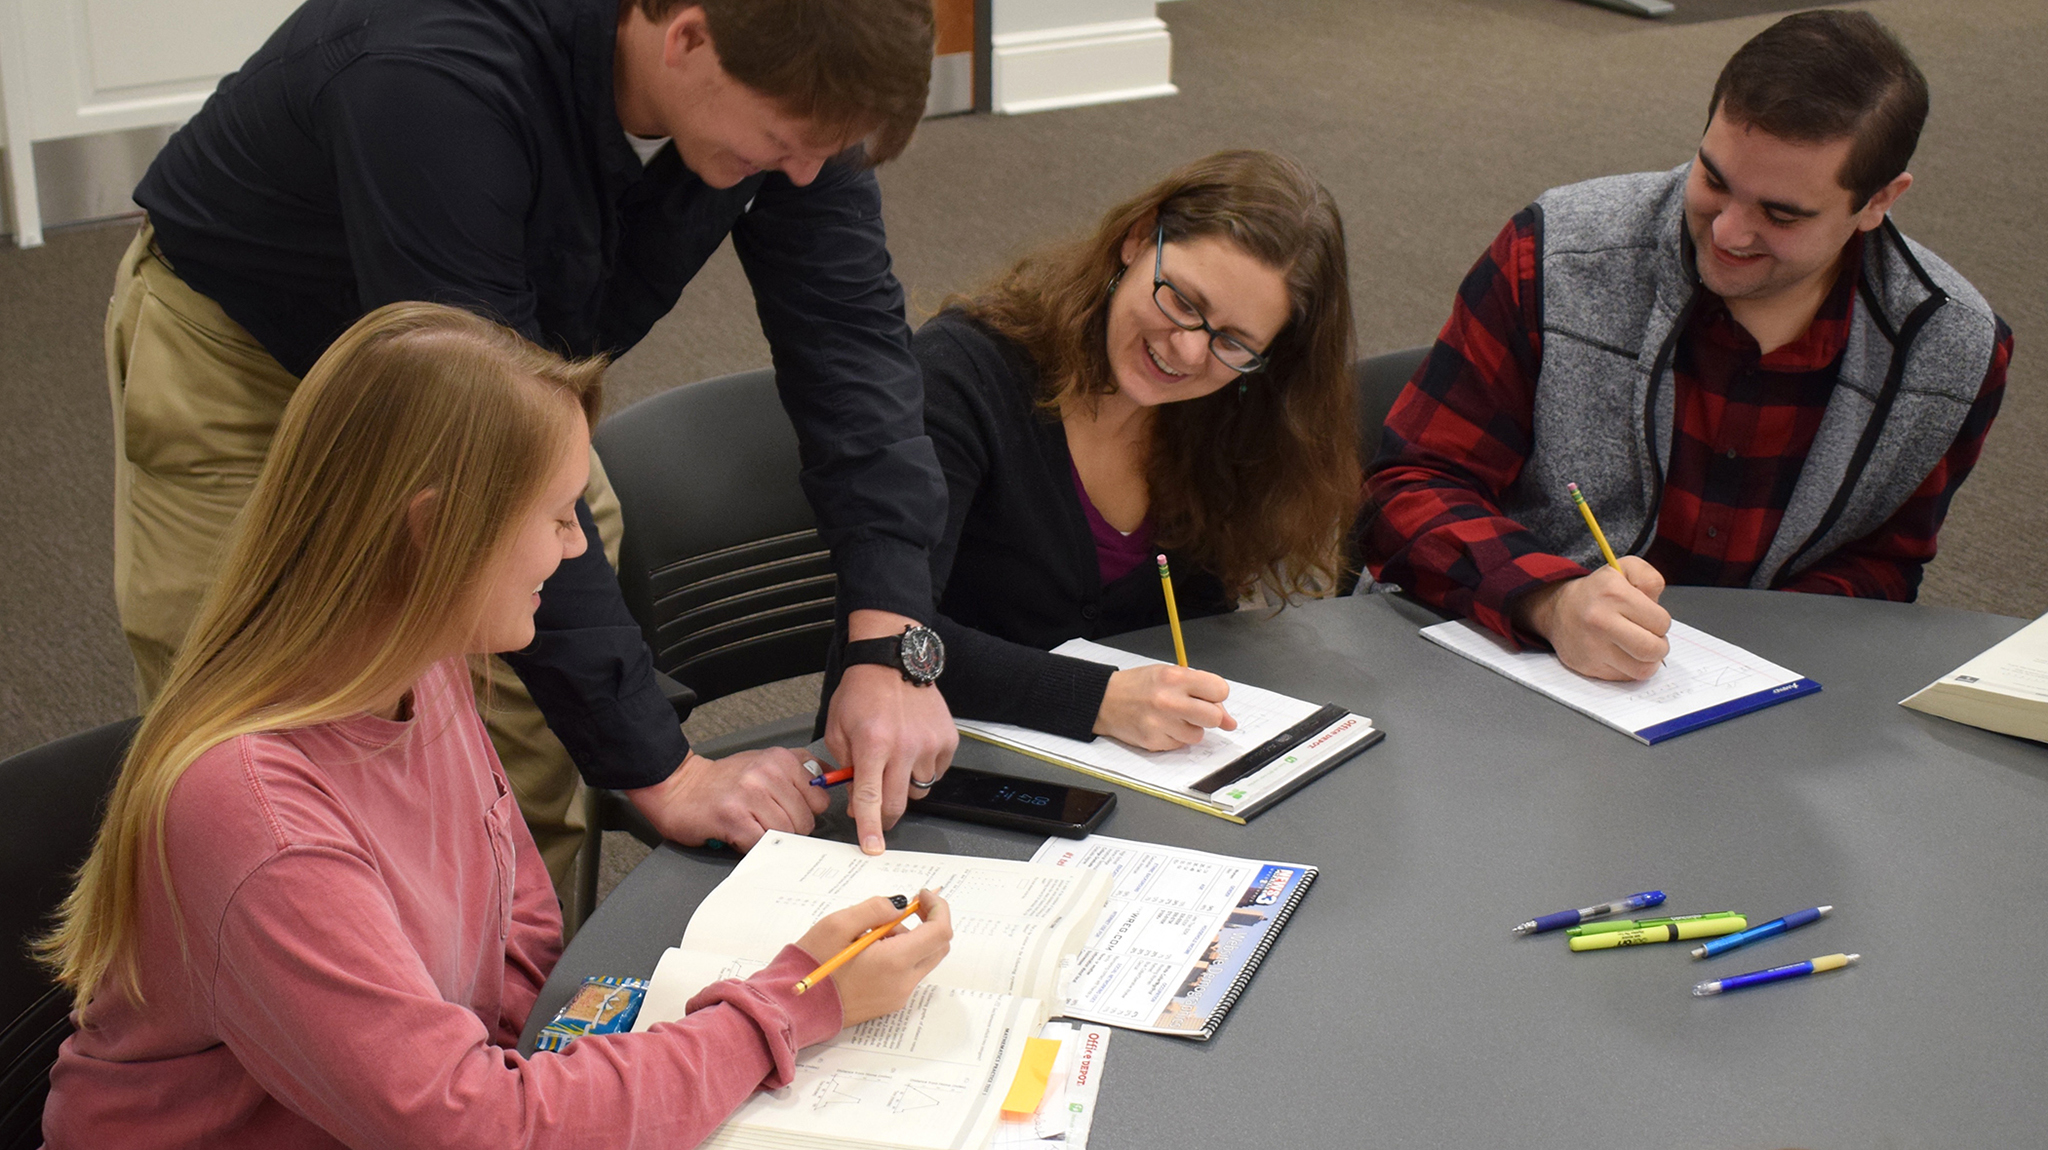 University Offers Variety of Test Prep Opportunities - Ole Miss News